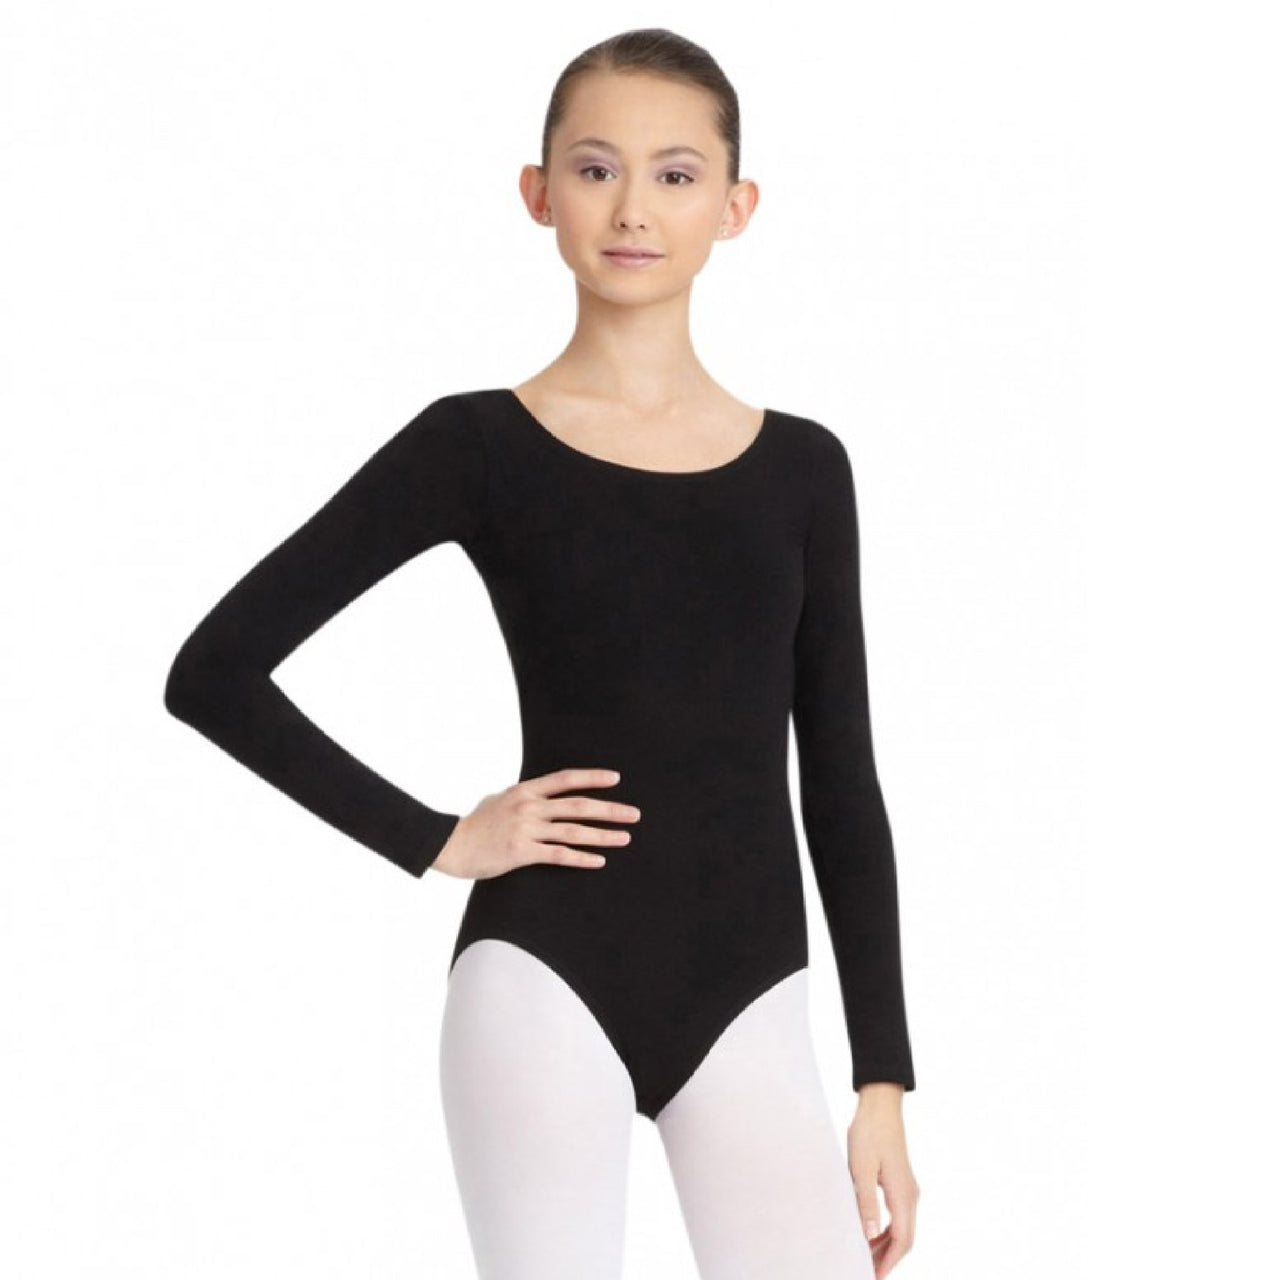 Capezio CC450C - Long Sleeve Leotard Cotton Child